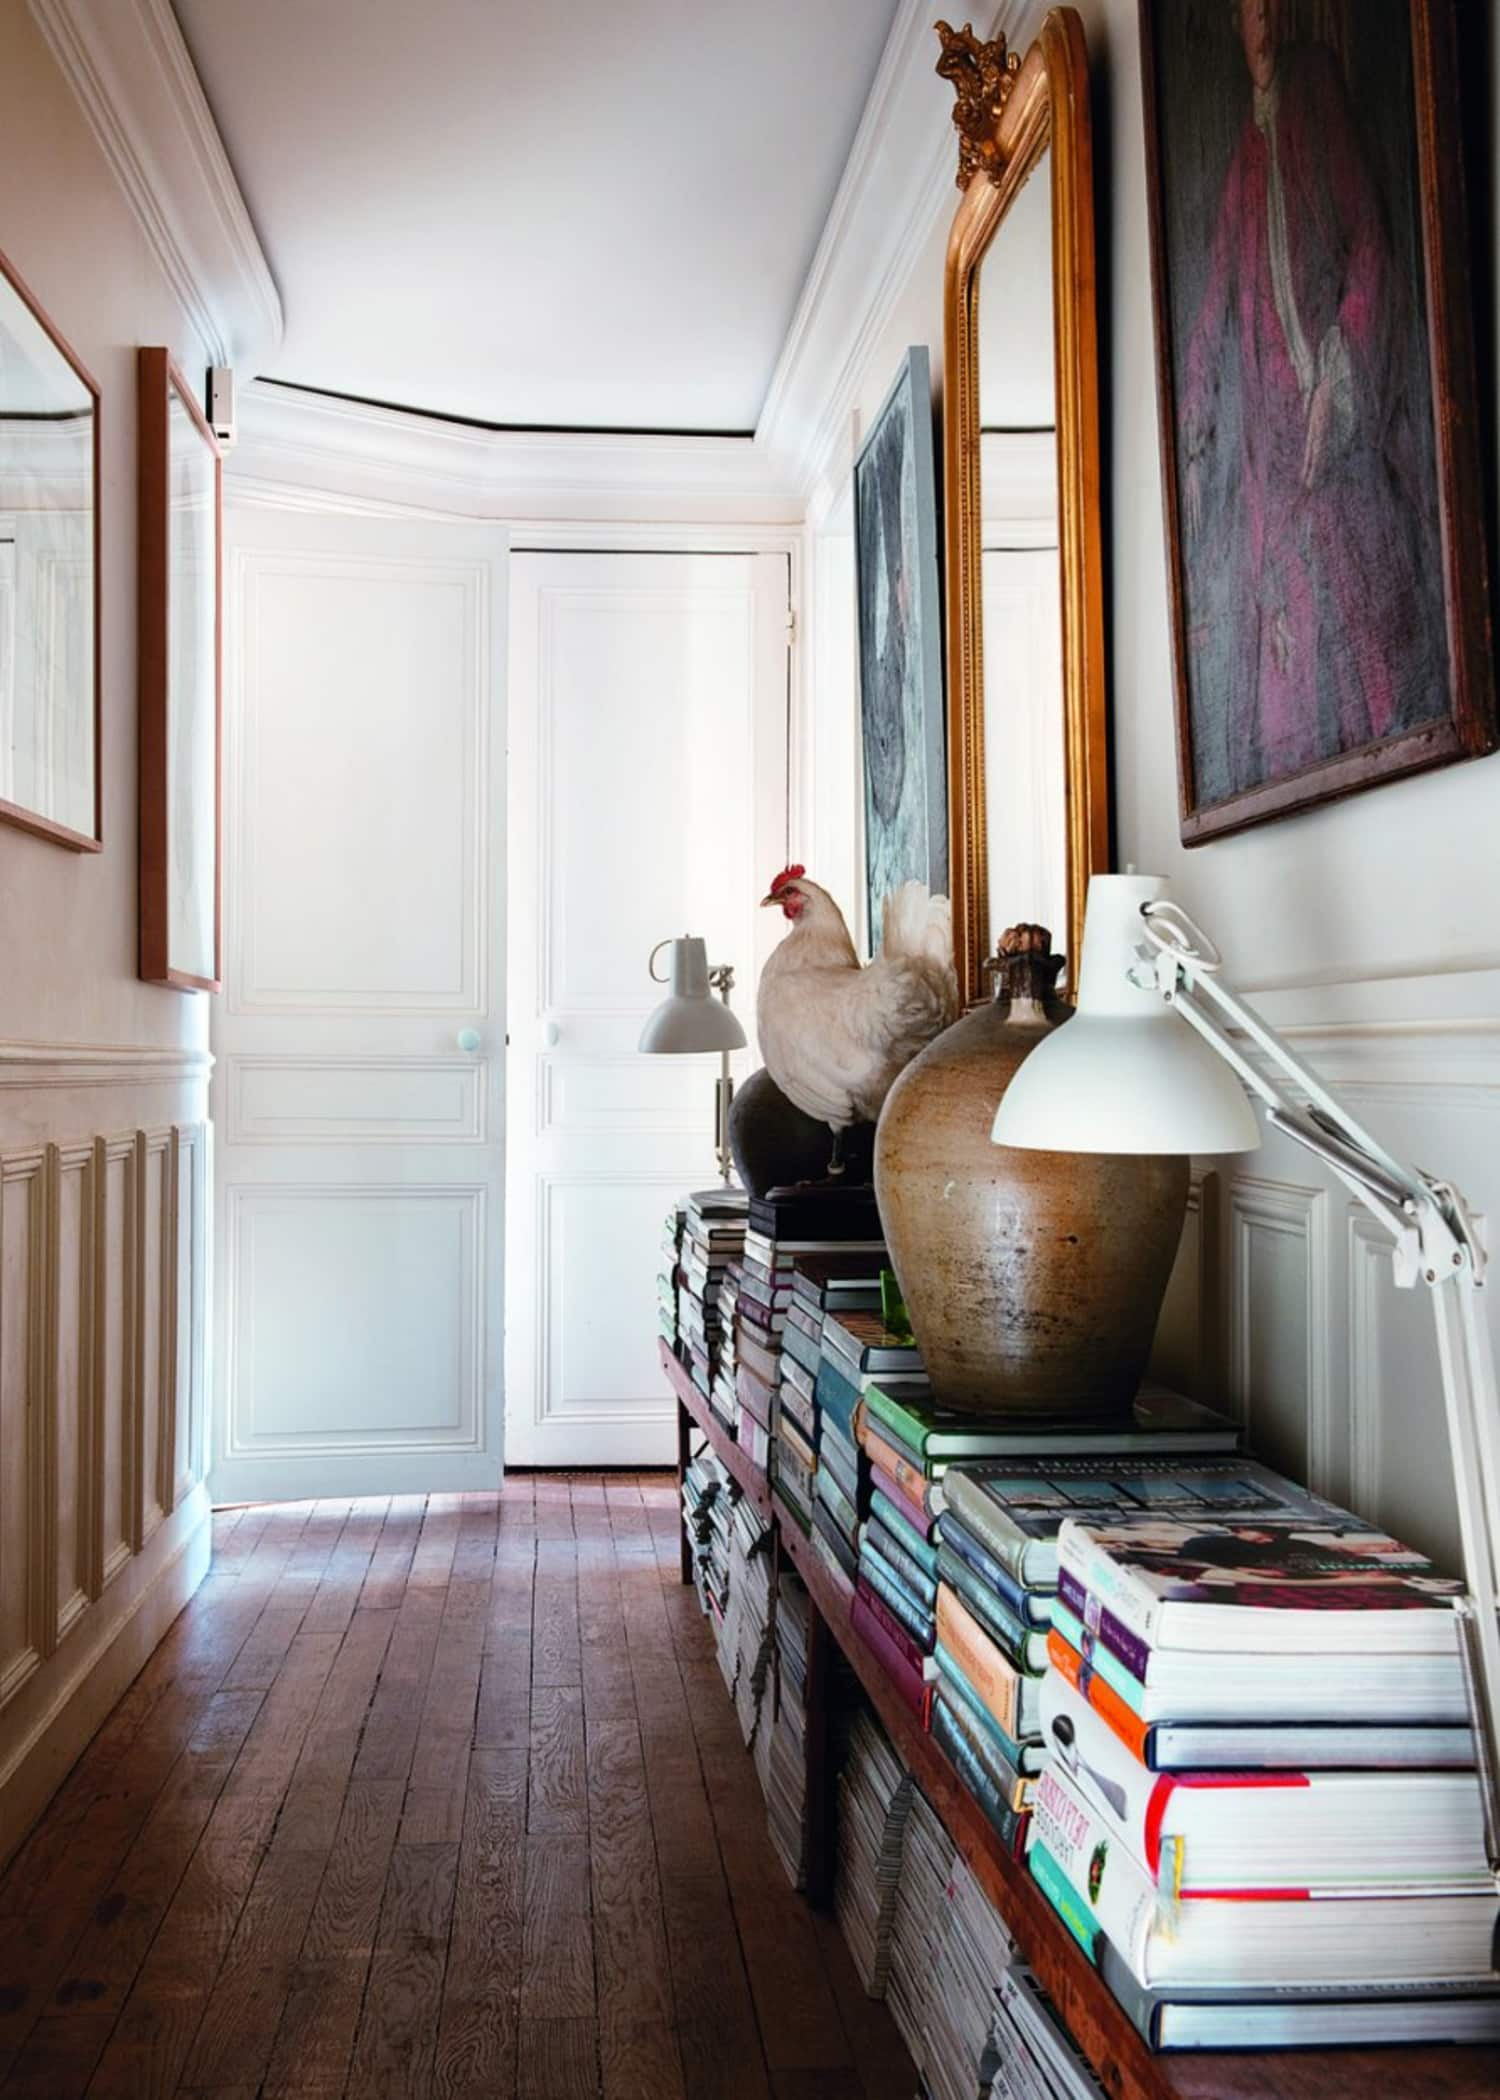 Overlooked No More: 10 Ideas to Add Style & Function to Hallways